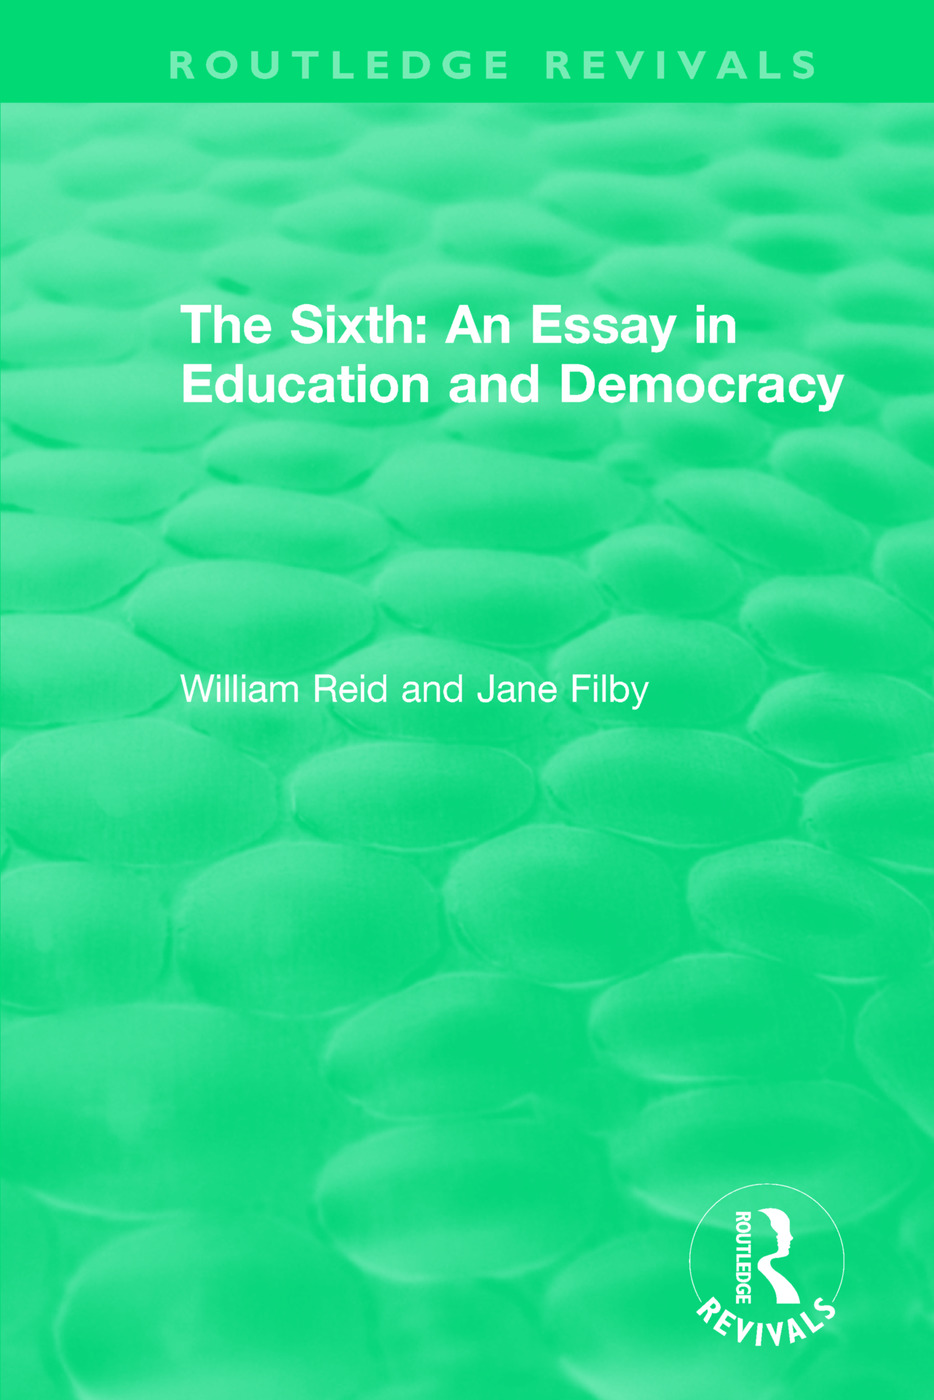 The Sixth: An Essay in Education and Democracy book cover